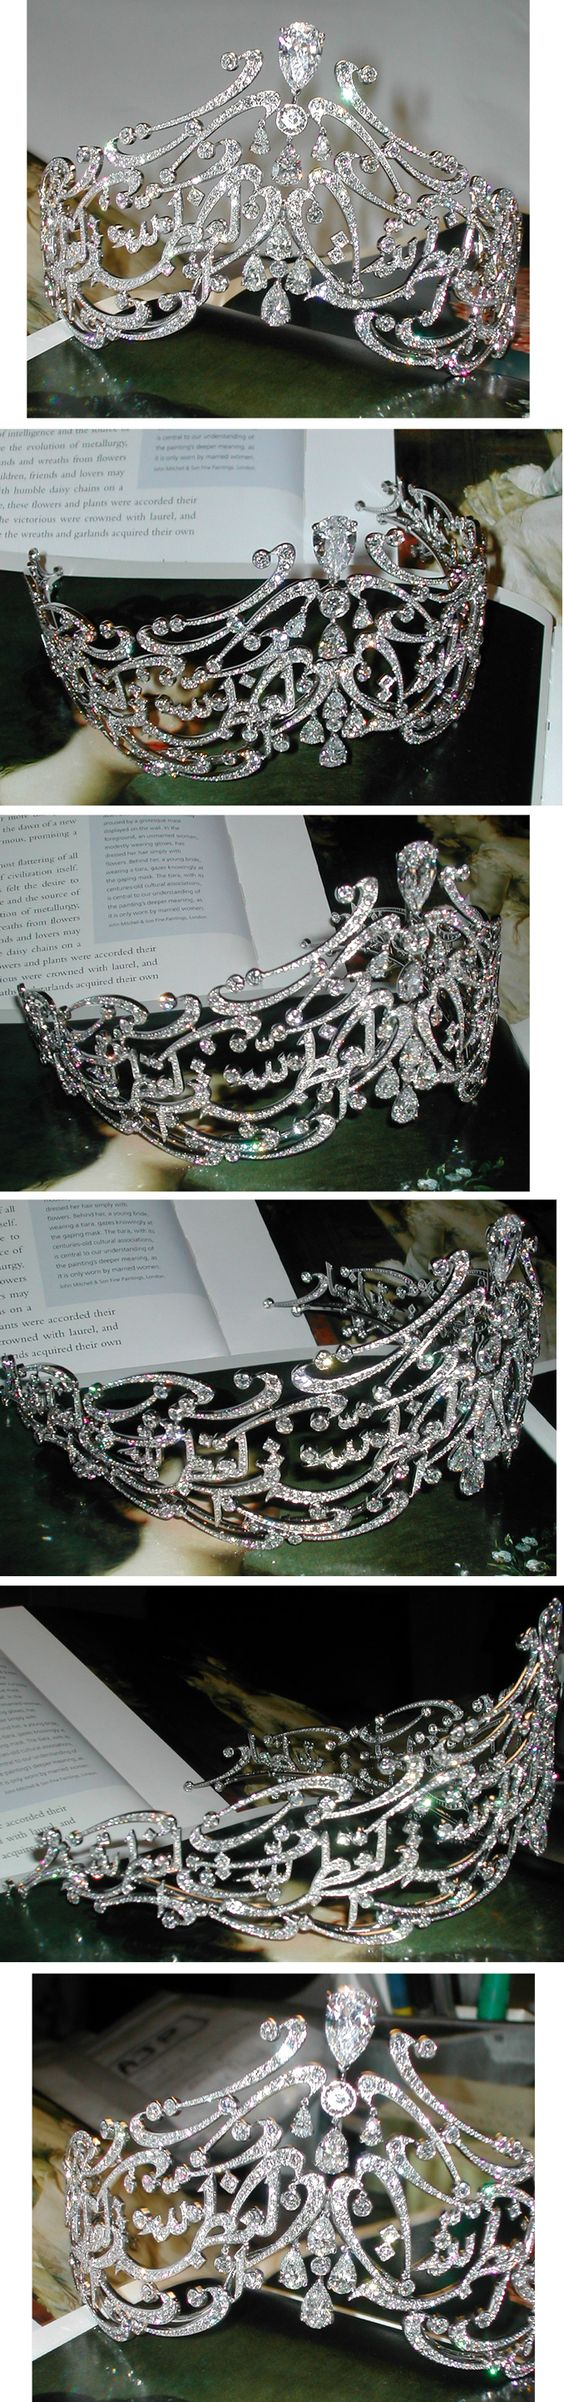 Arabic Scroll tiara for Queen of Jordan, over 1300 Diamonds and white gold